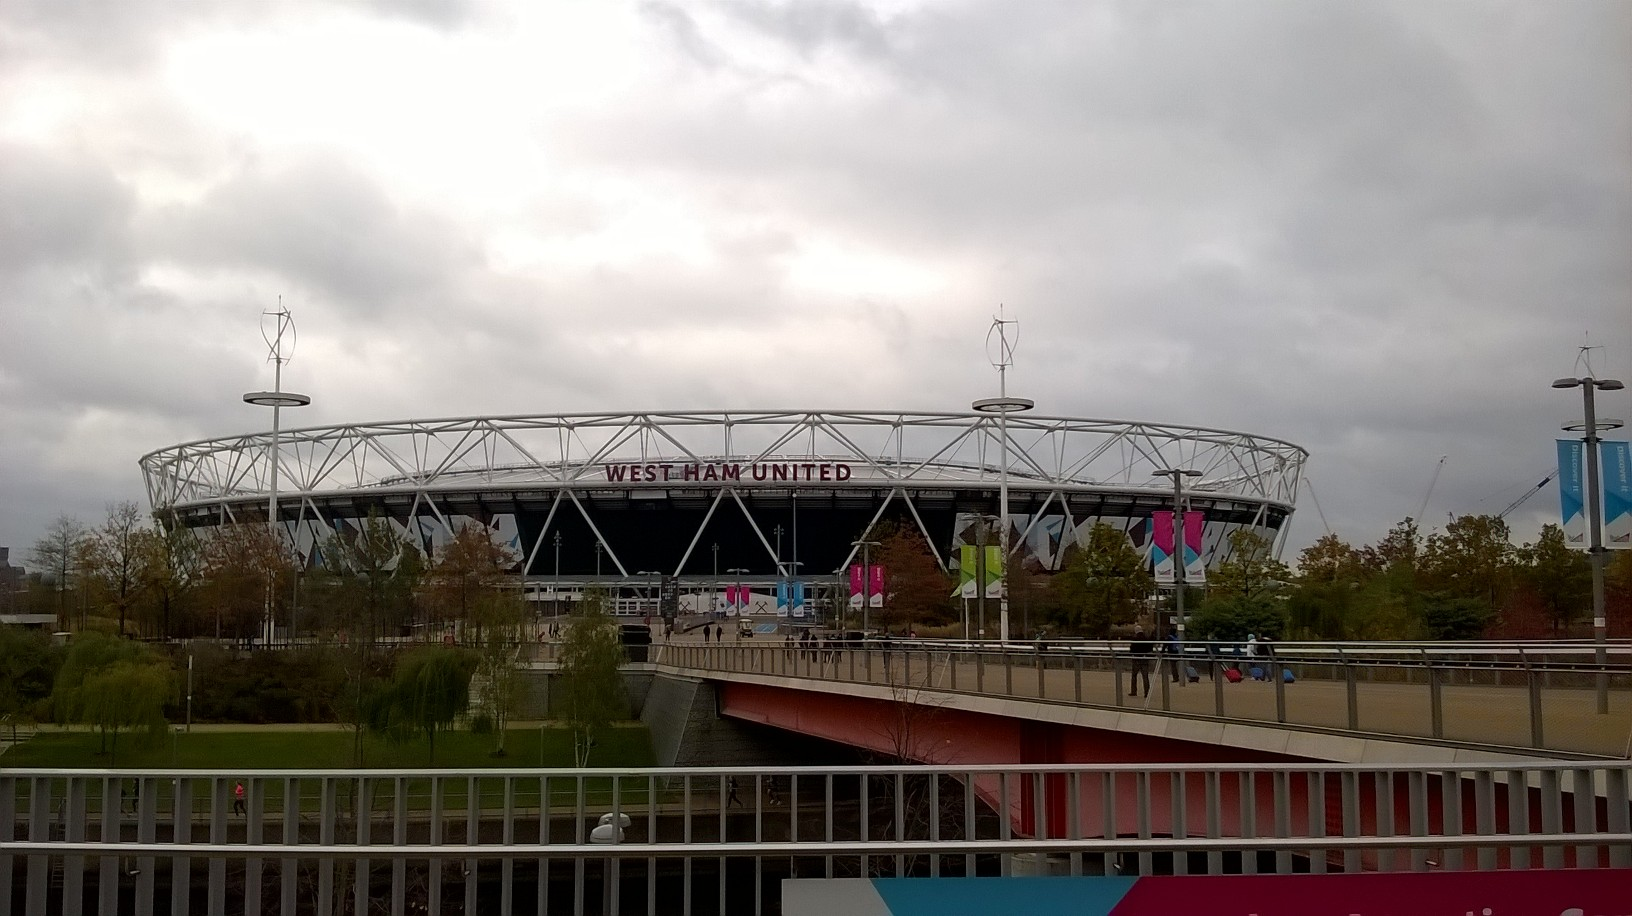 West ham stadium.jpg